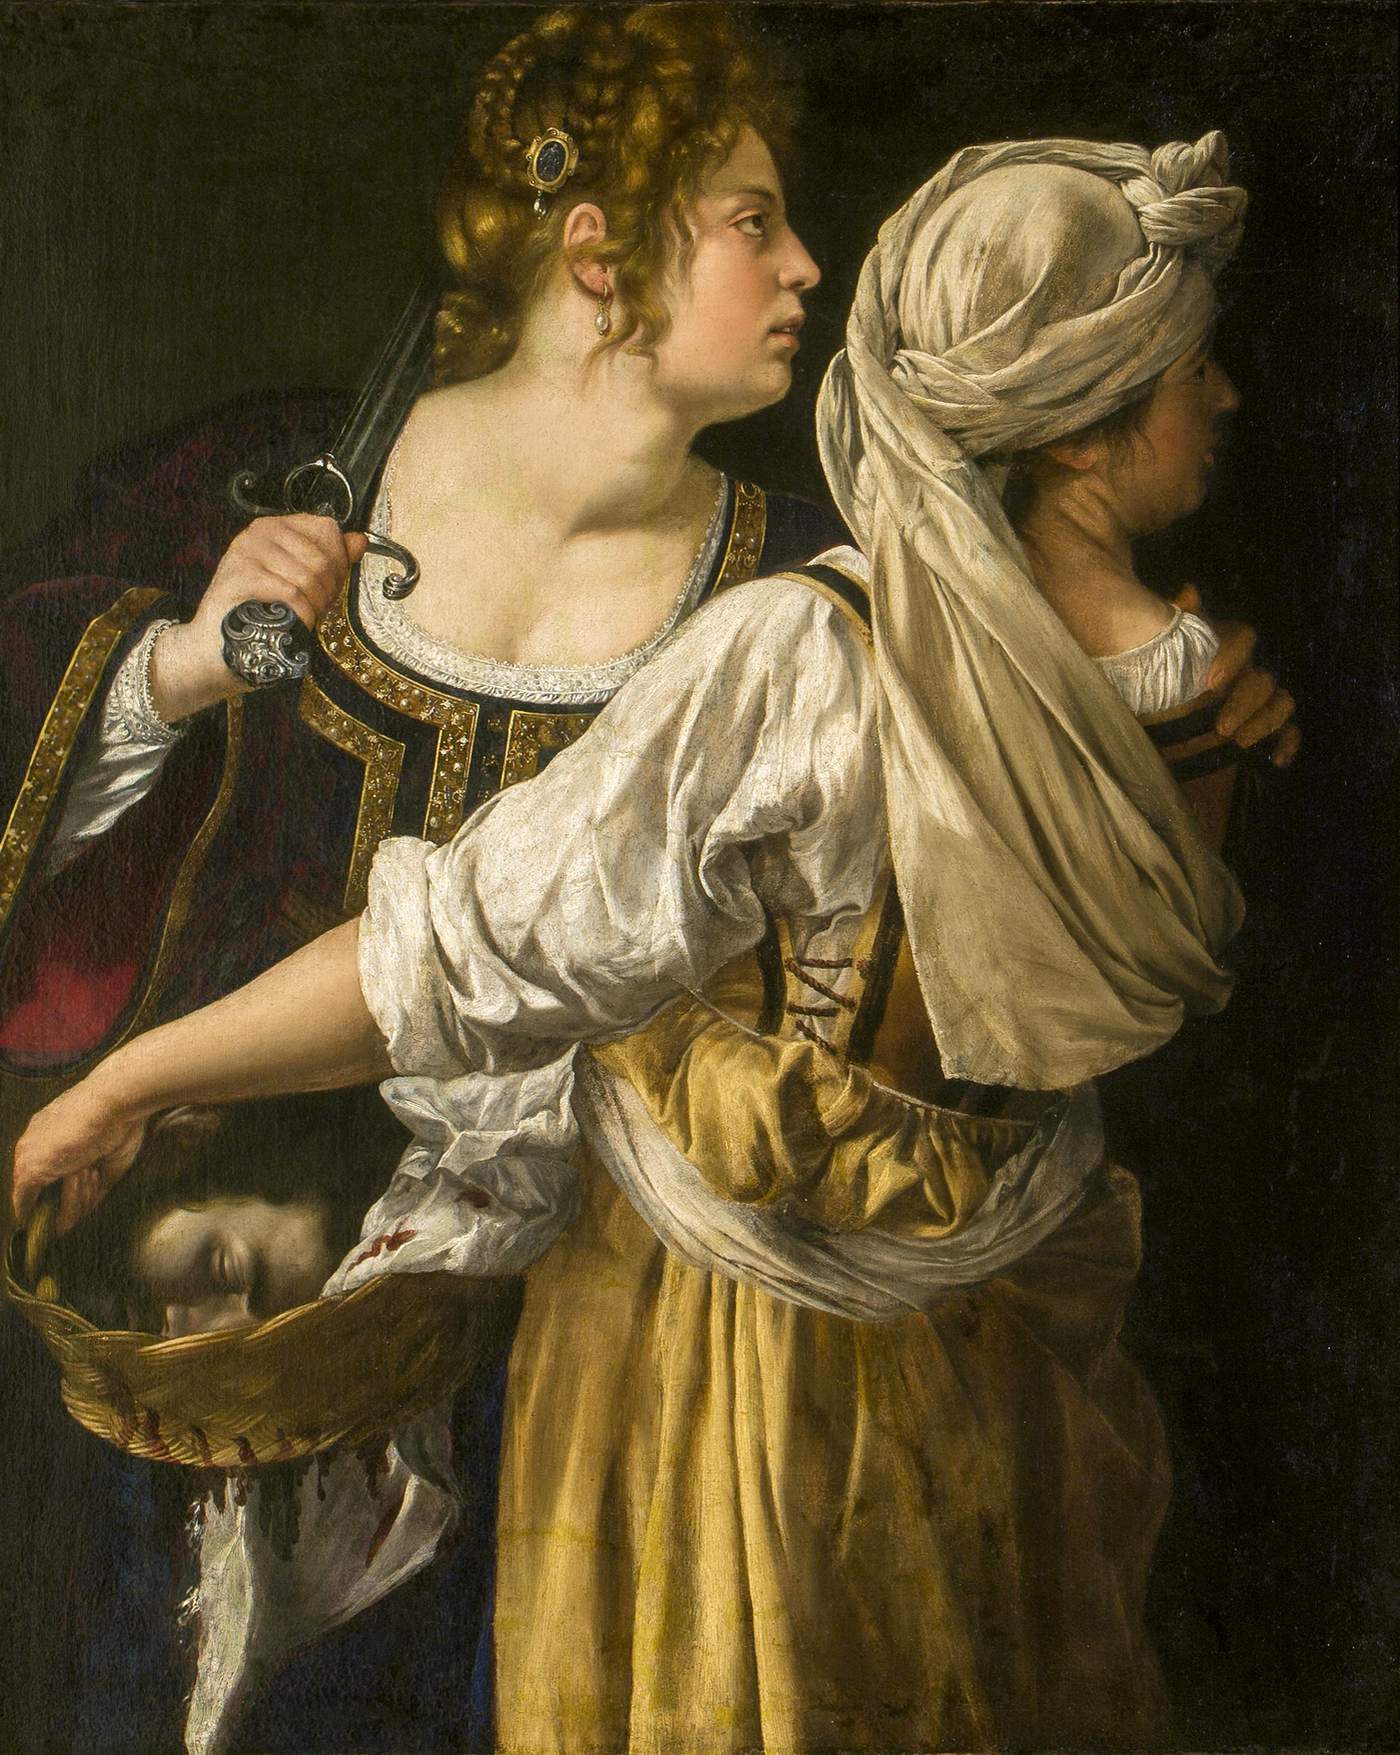 Judith and her maidservant with the head of Holofernes. Artemisia Gentileschi